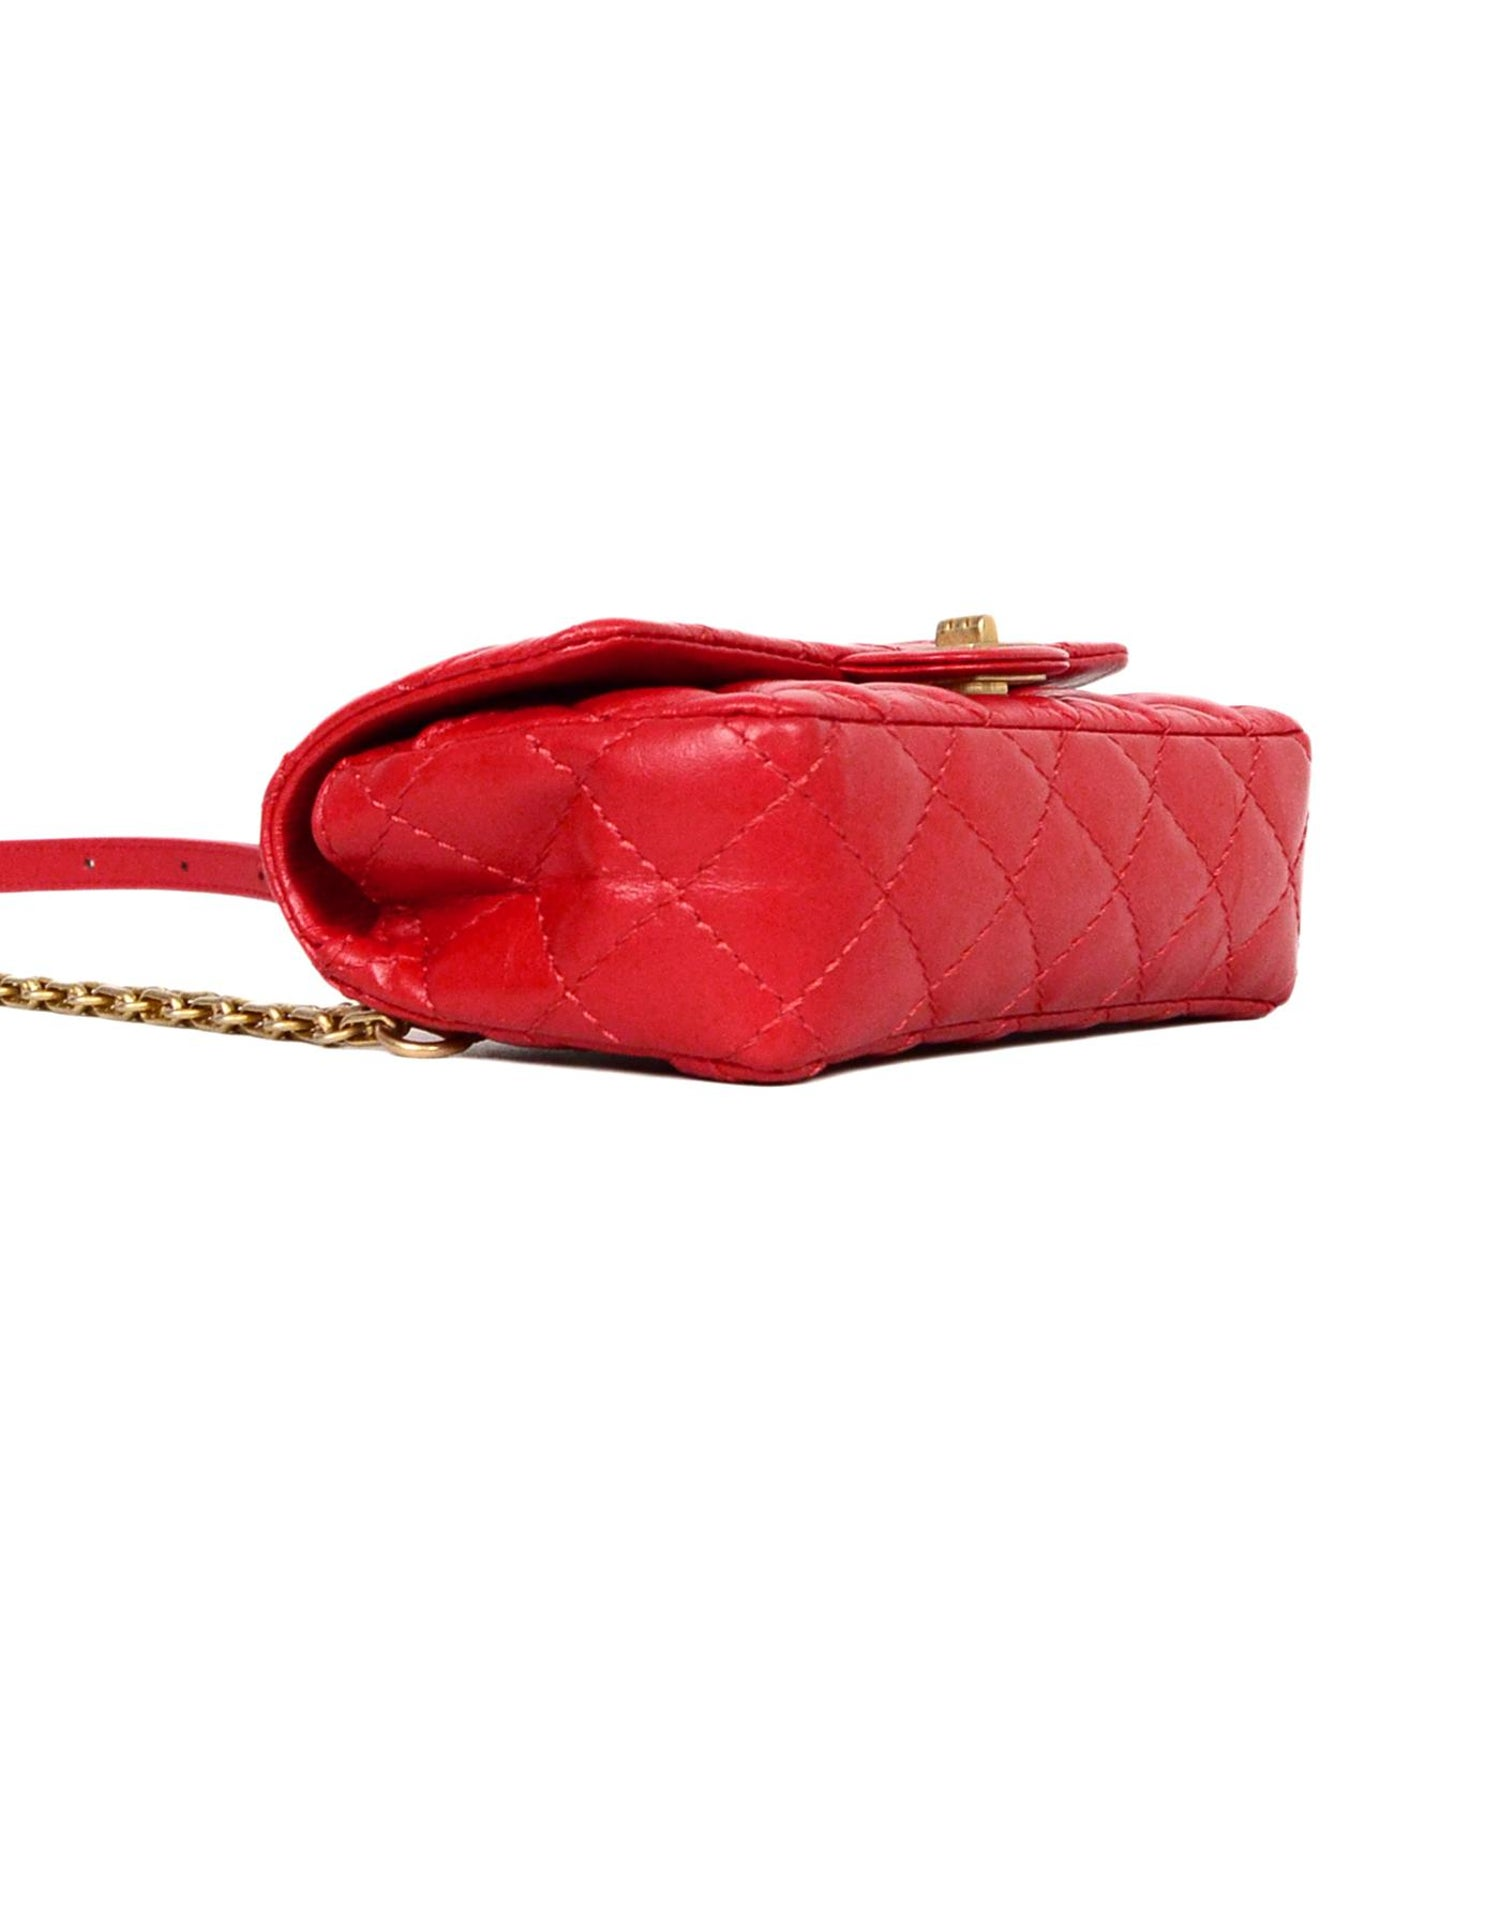 87cbc46292c0 Chanel 2018 Red Quilted Calfskin Leather Reissue 2.55 Belt Bag For Sale at  1stdibs